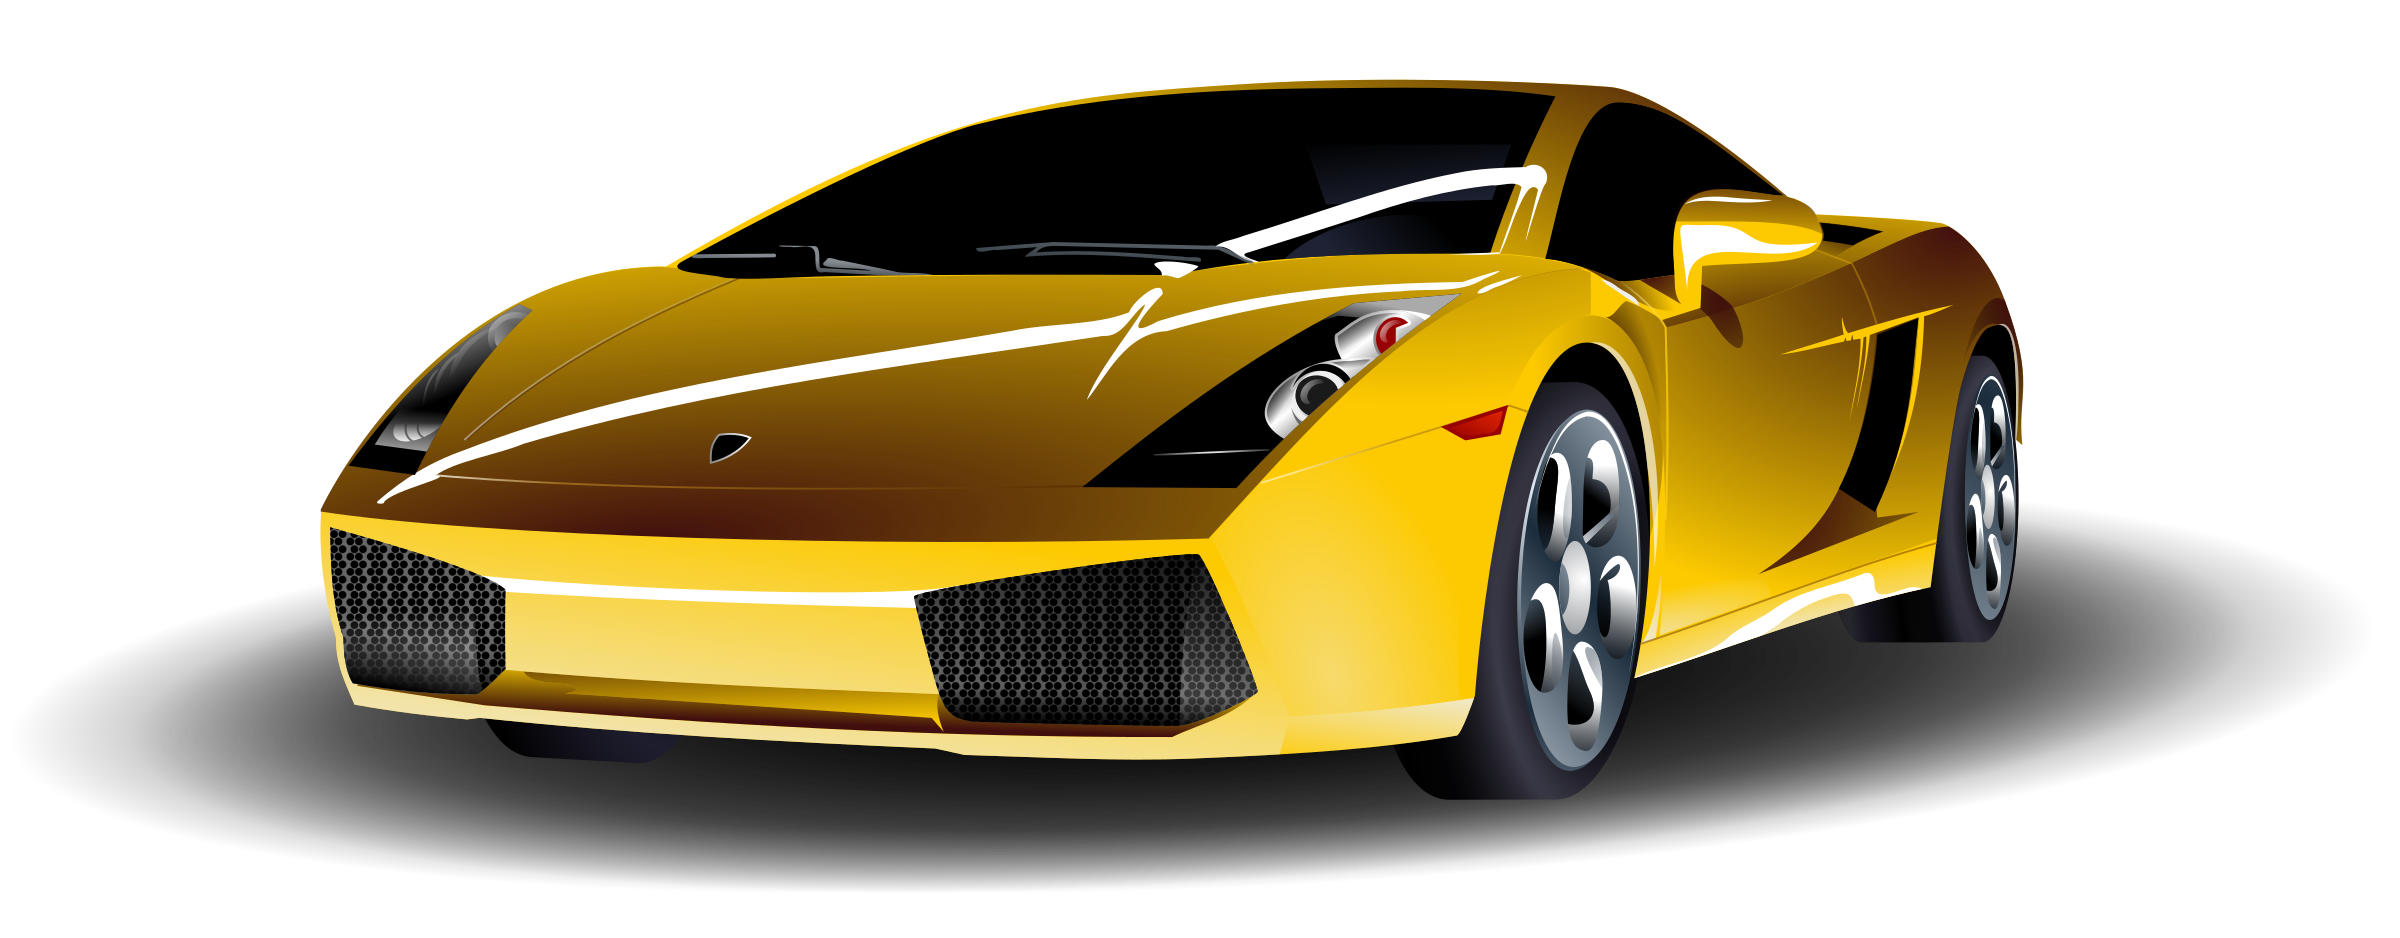 Free Expensive Cliparts, Download Free Clip Art, Free Clip.